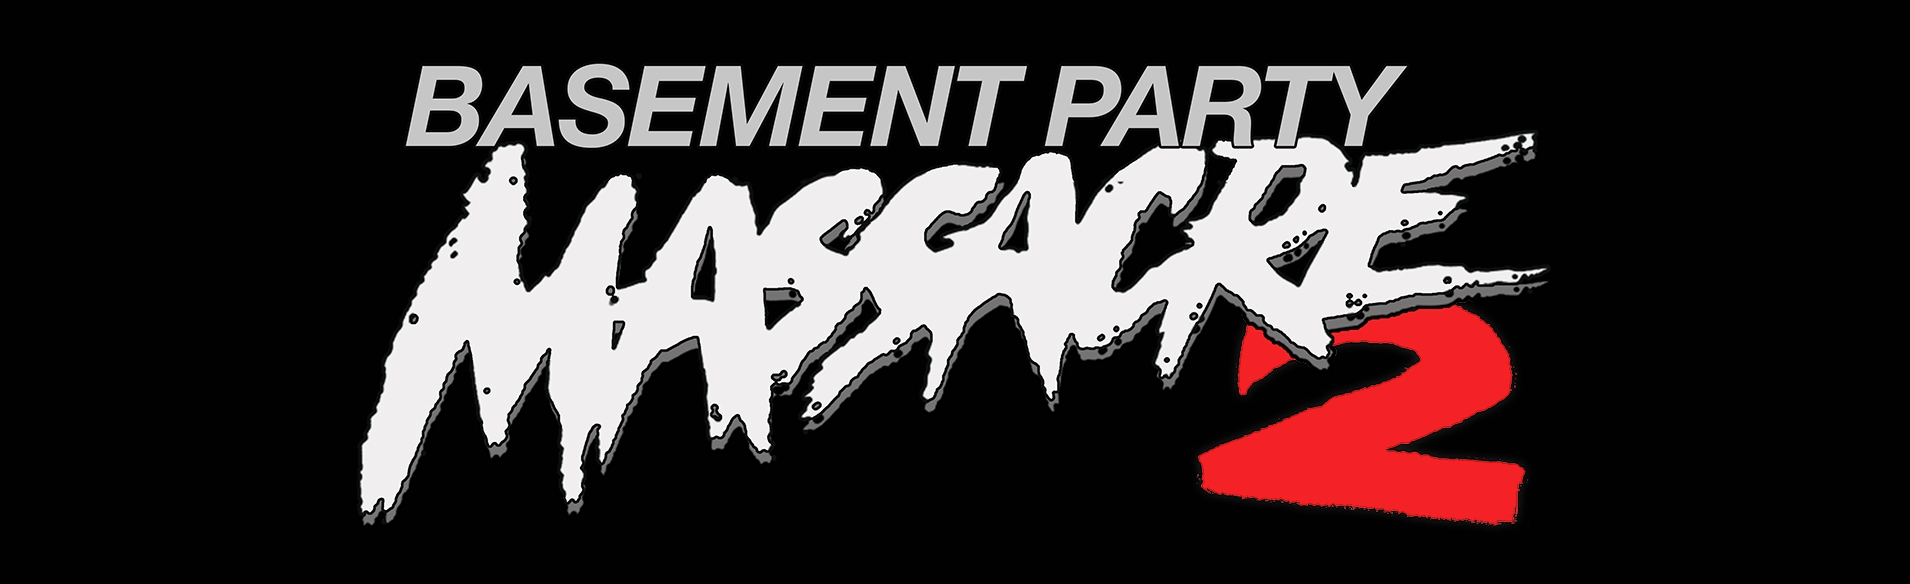 ATIC PRESENTS 'BASEMENT PARTY MASSACRE 2' 1